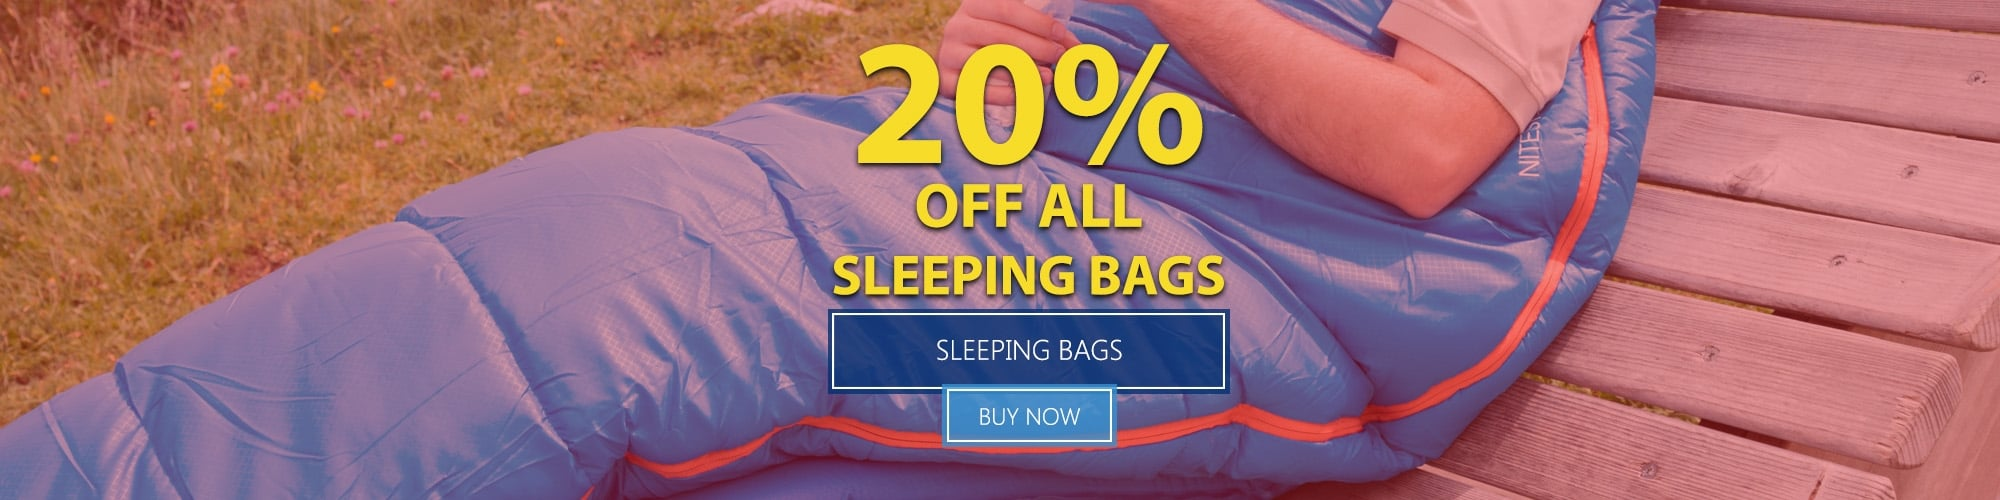 20% Off All Sleeping Bags and Mats